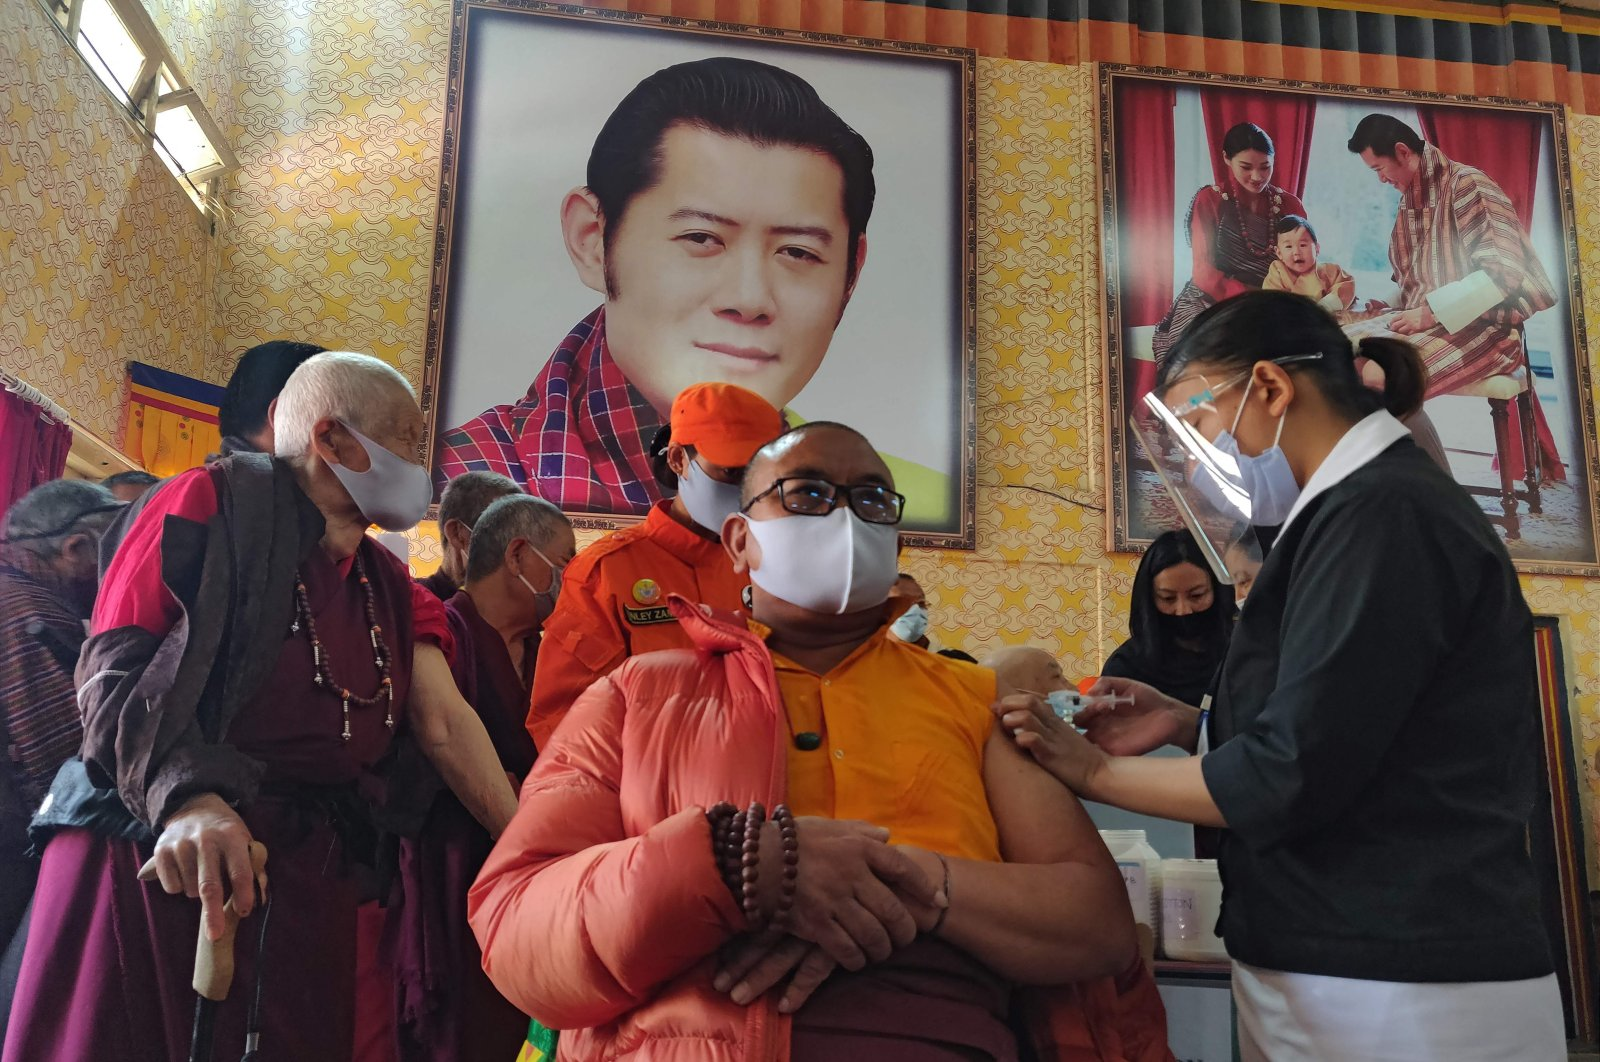 A health worker gives a dose of a COVID-19 vaccine to a Buddhist monk sitting in front of a portrait of Bhutan's King Jigme Khesar Namgyel Wangchuck, at Lungtenzampa Middle Secondary School in Thimphu, Bhutan, March 27, 2021. (AFP Photo)